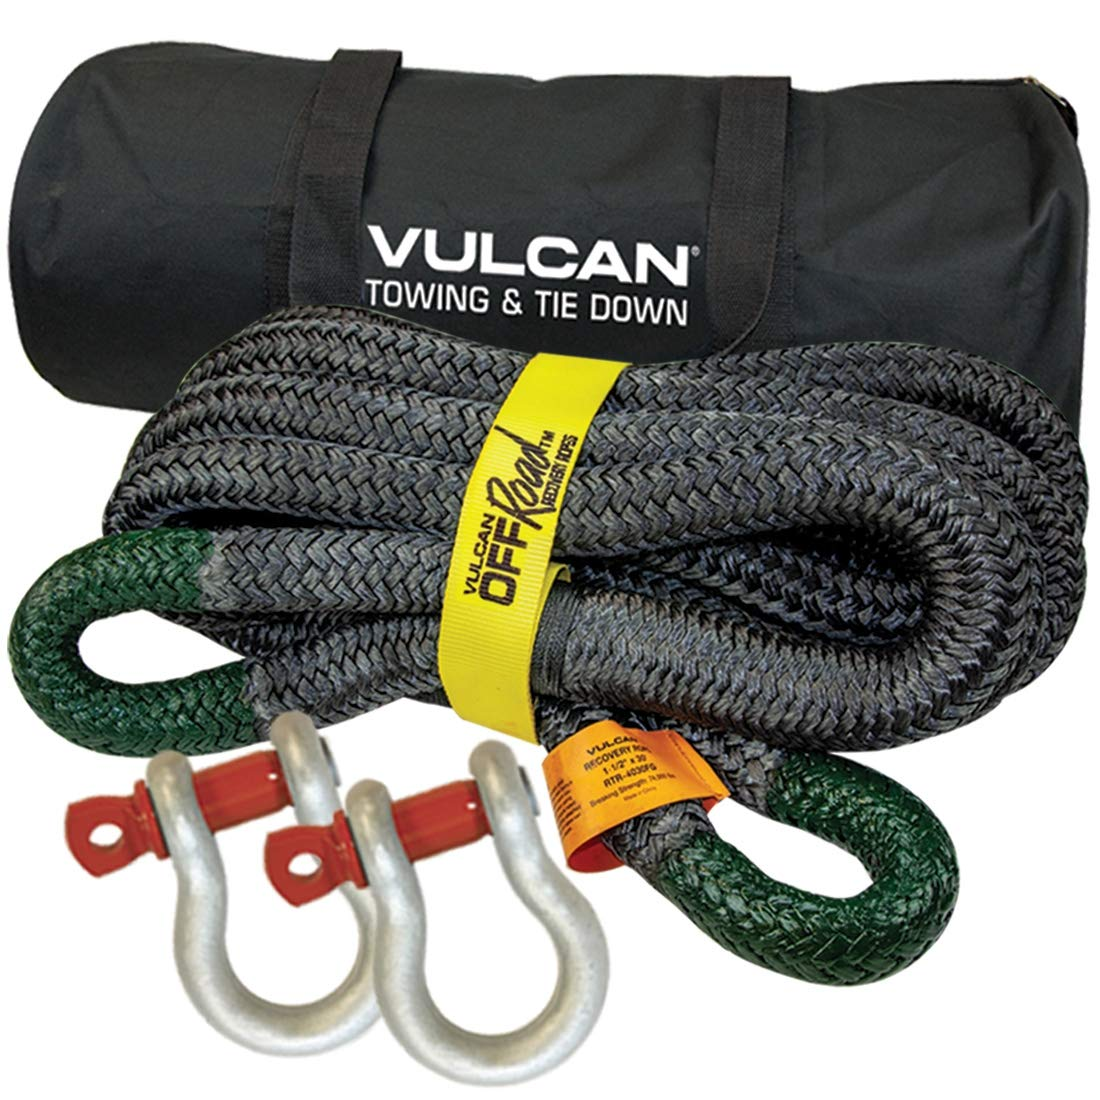 Vulcan 1-1/2'' x 30' Off-Road Double Braided Recovery Rope Kit w/Rope, Two Shackles and Vented Storage Bag - 74,000 lbs. Breaking Strength - Green, Black by Vulcan